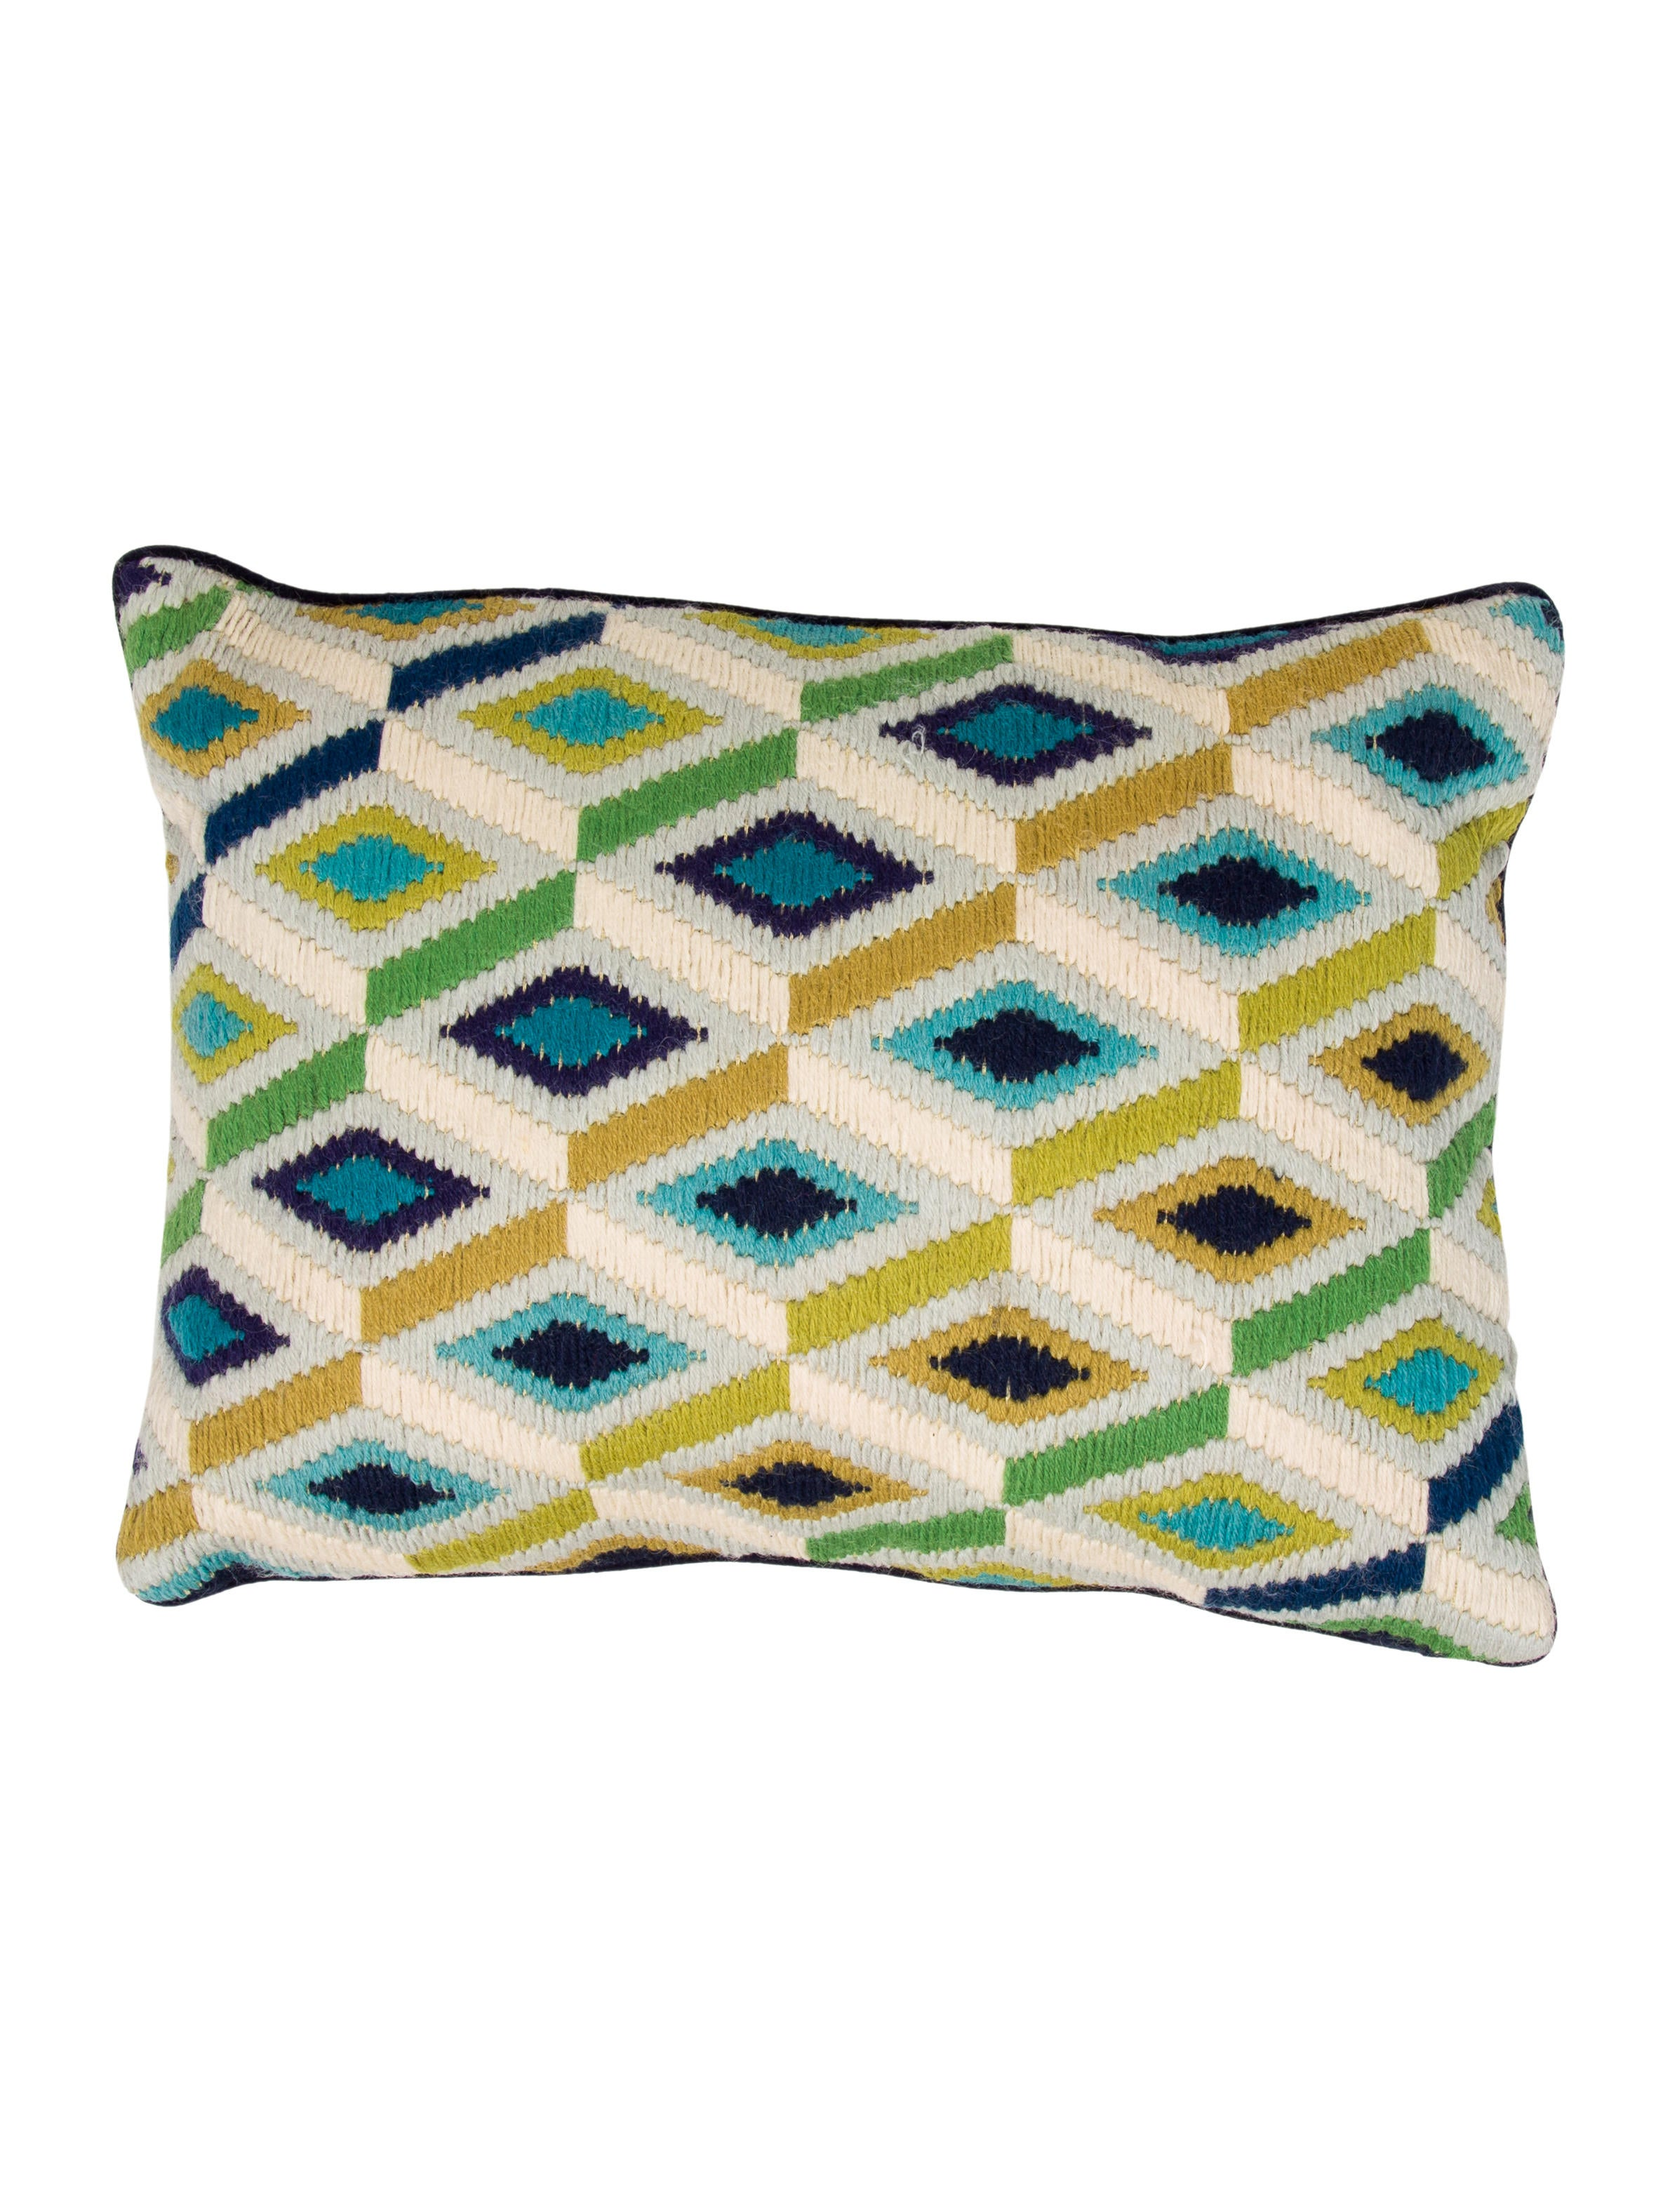 Throw Pillows Justice : Jonathan Adler Needlepoint Throw Pillow - Bedding And Bath - JTADL20622 The RealReal